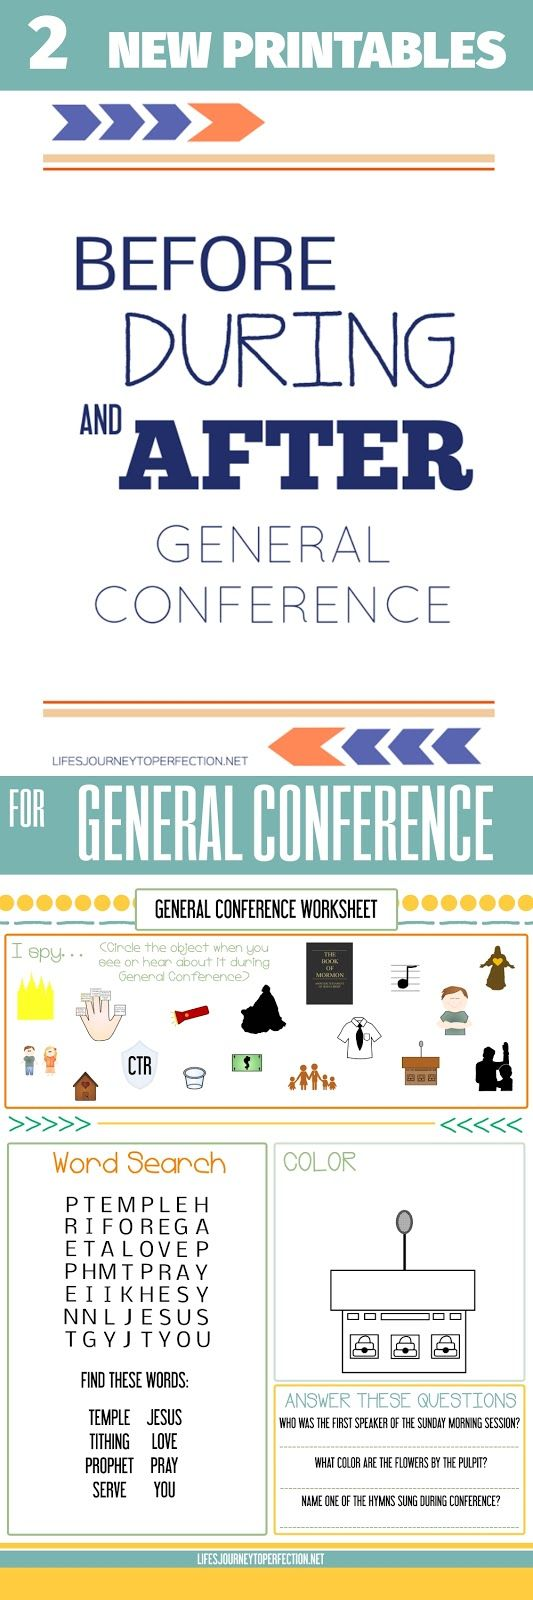 General Conference Packet And Worksheet Before During And After